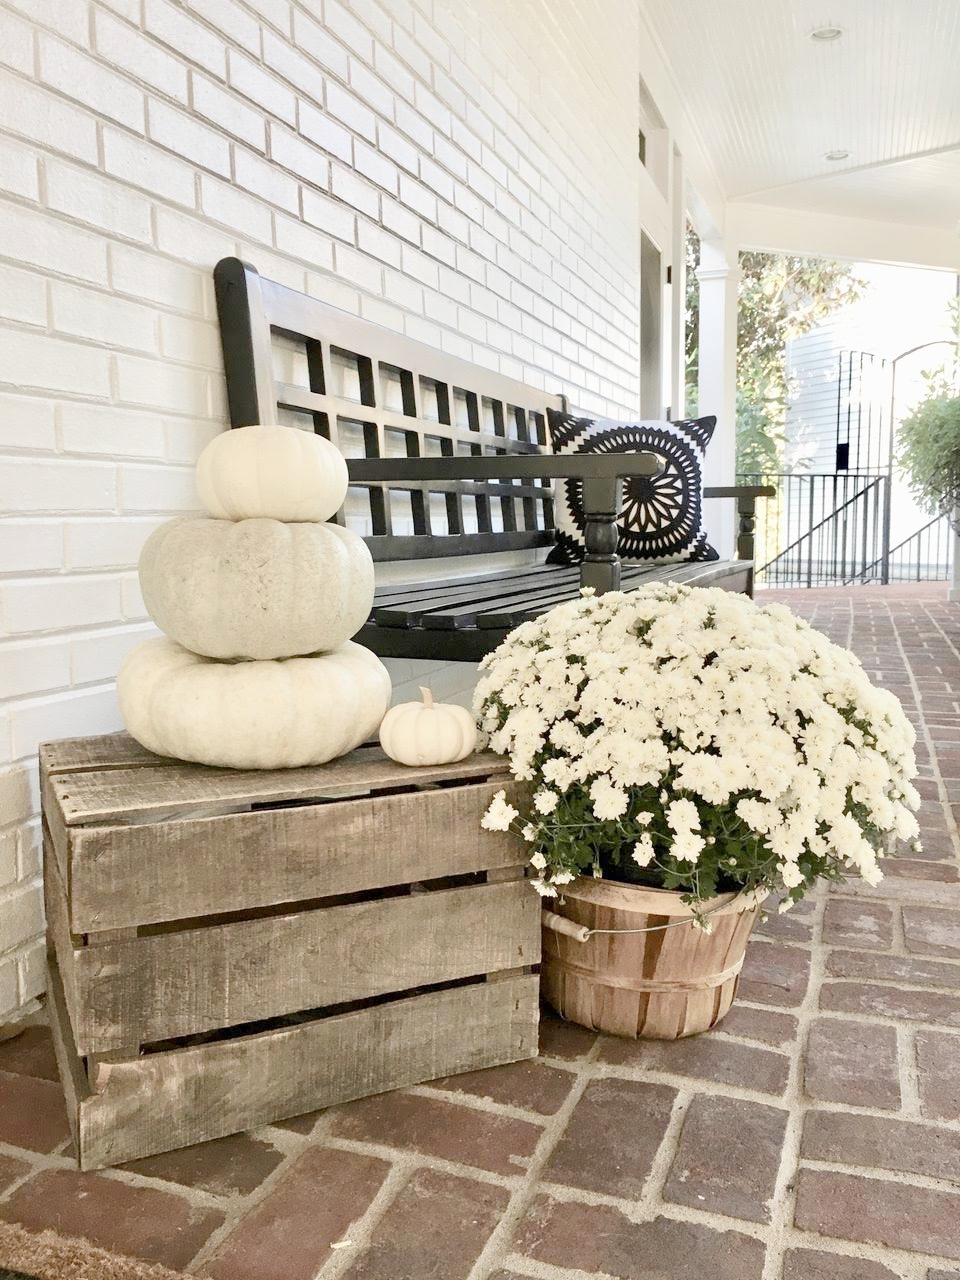 Fall Porch Decorations on Breezeway White pumpkin stack on wooden crates